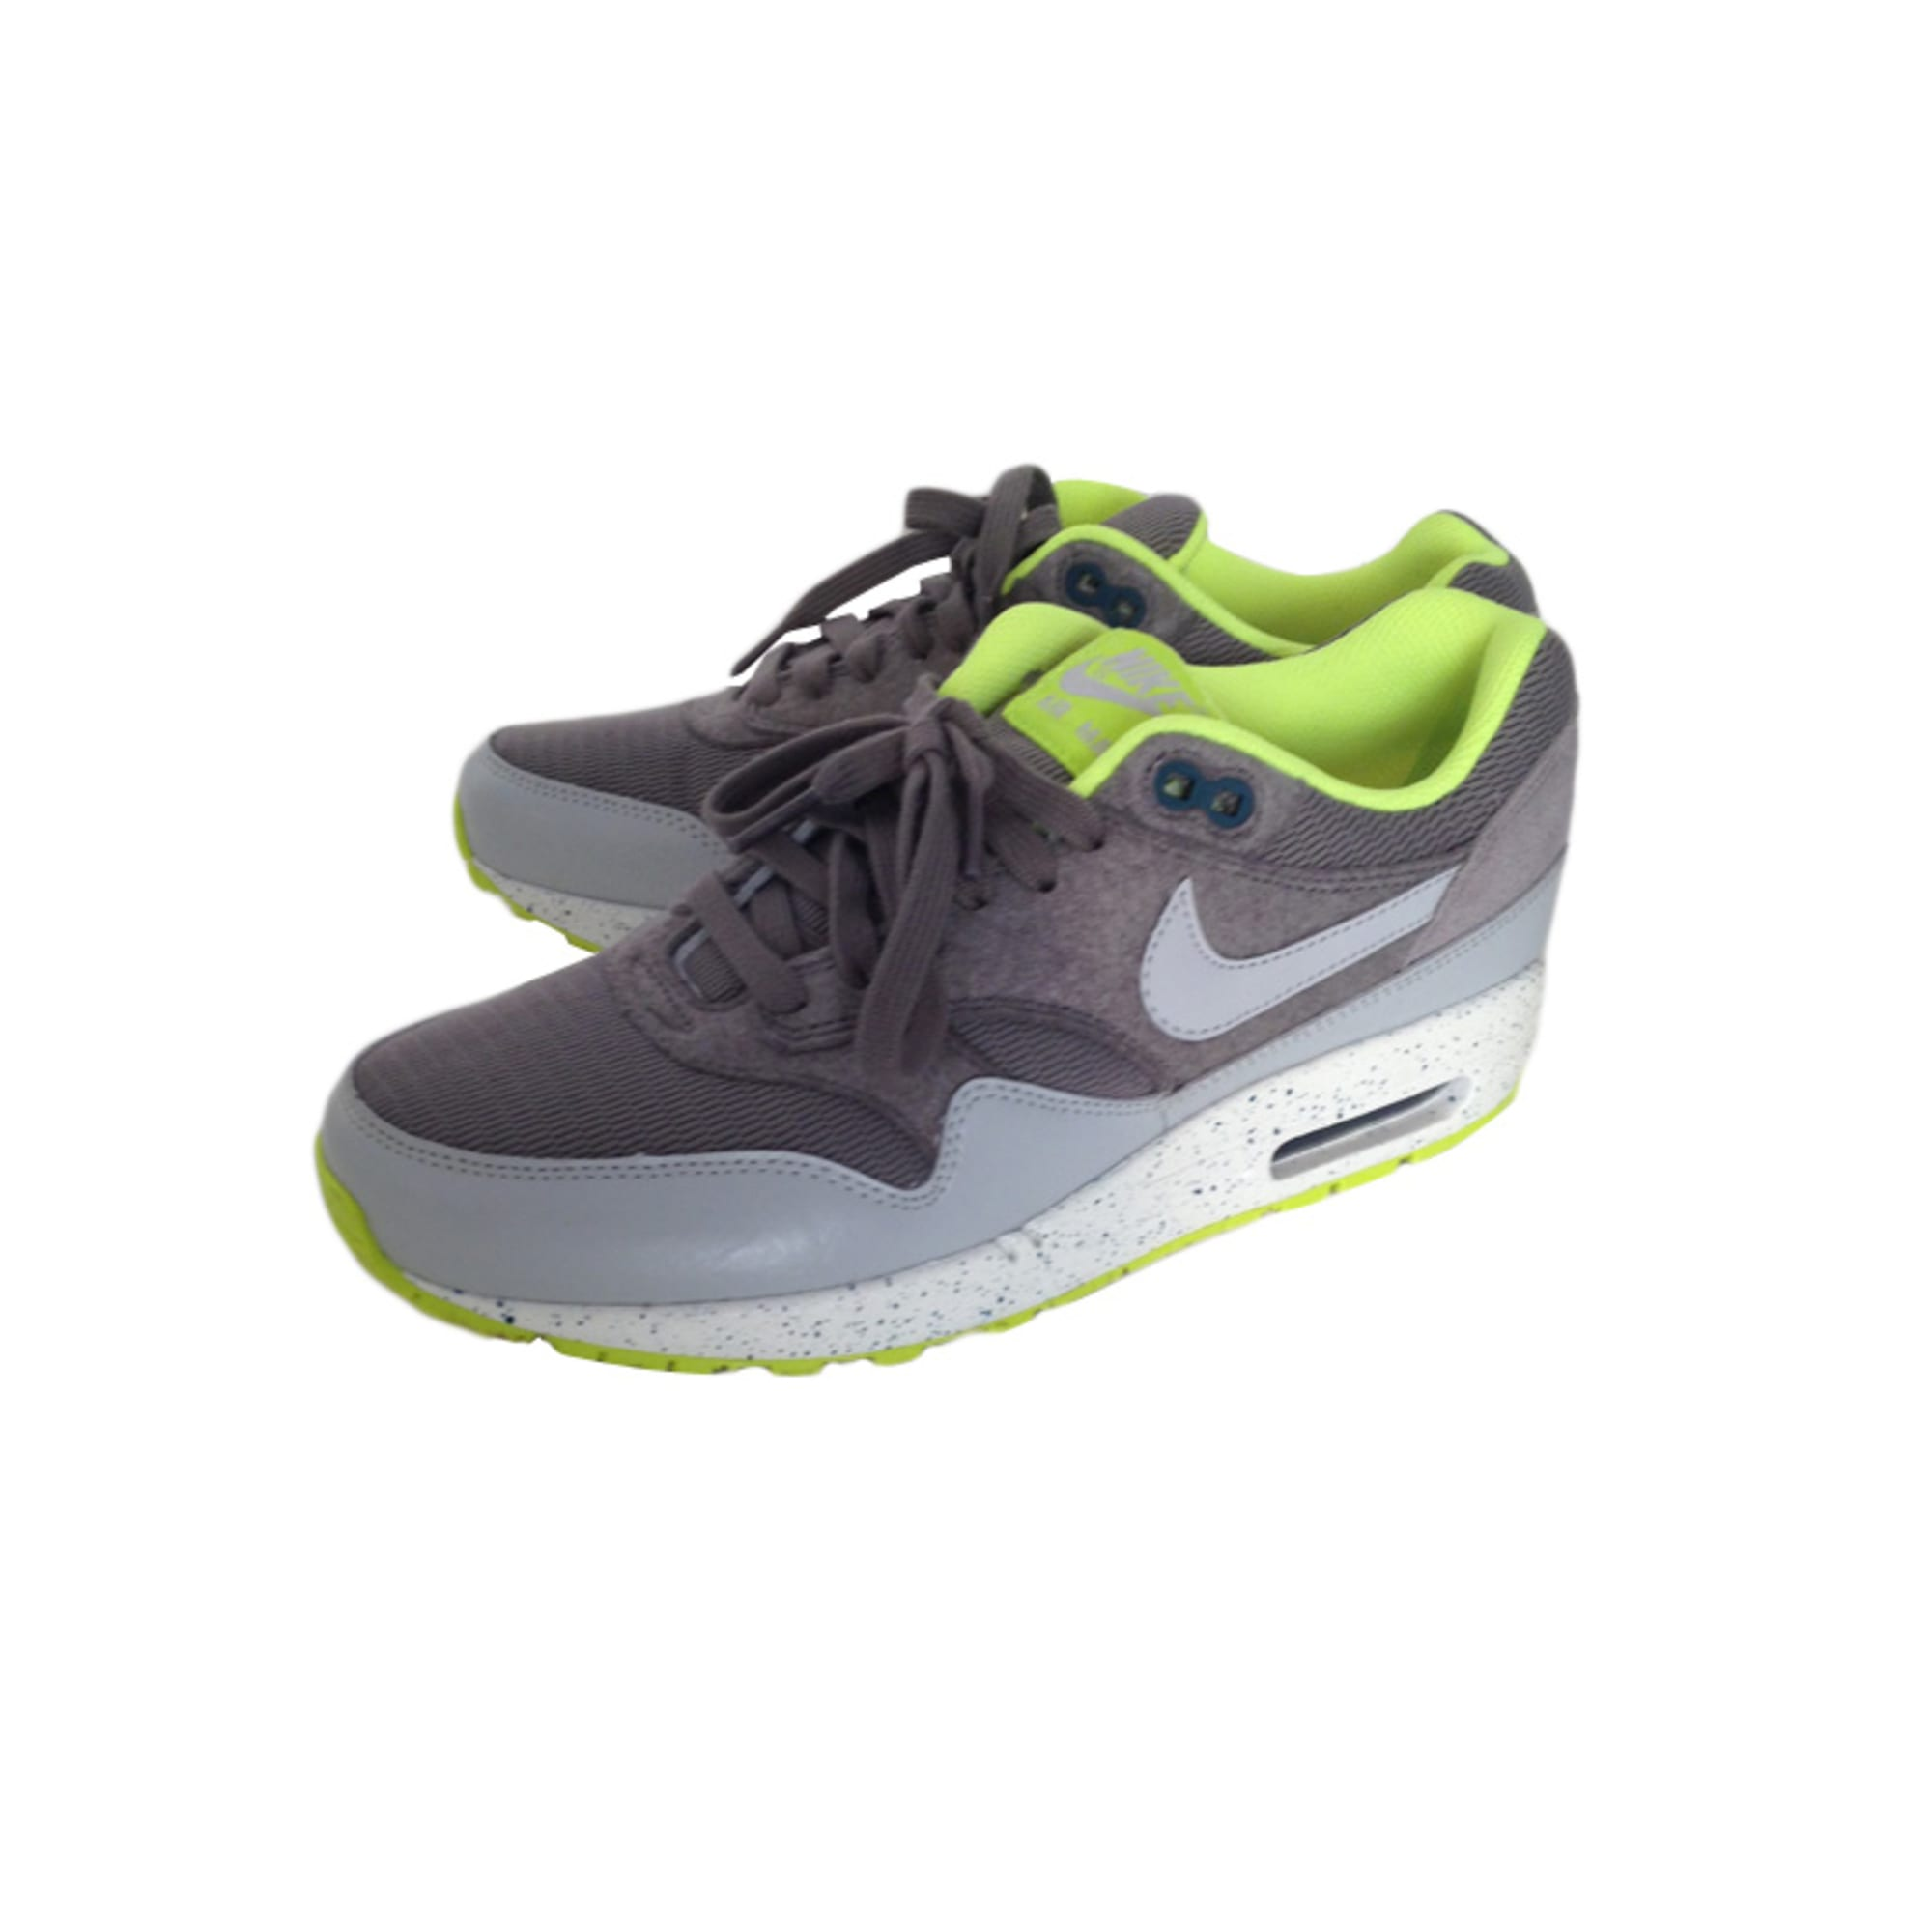 Sneakers NIKE Grau, anthrazit